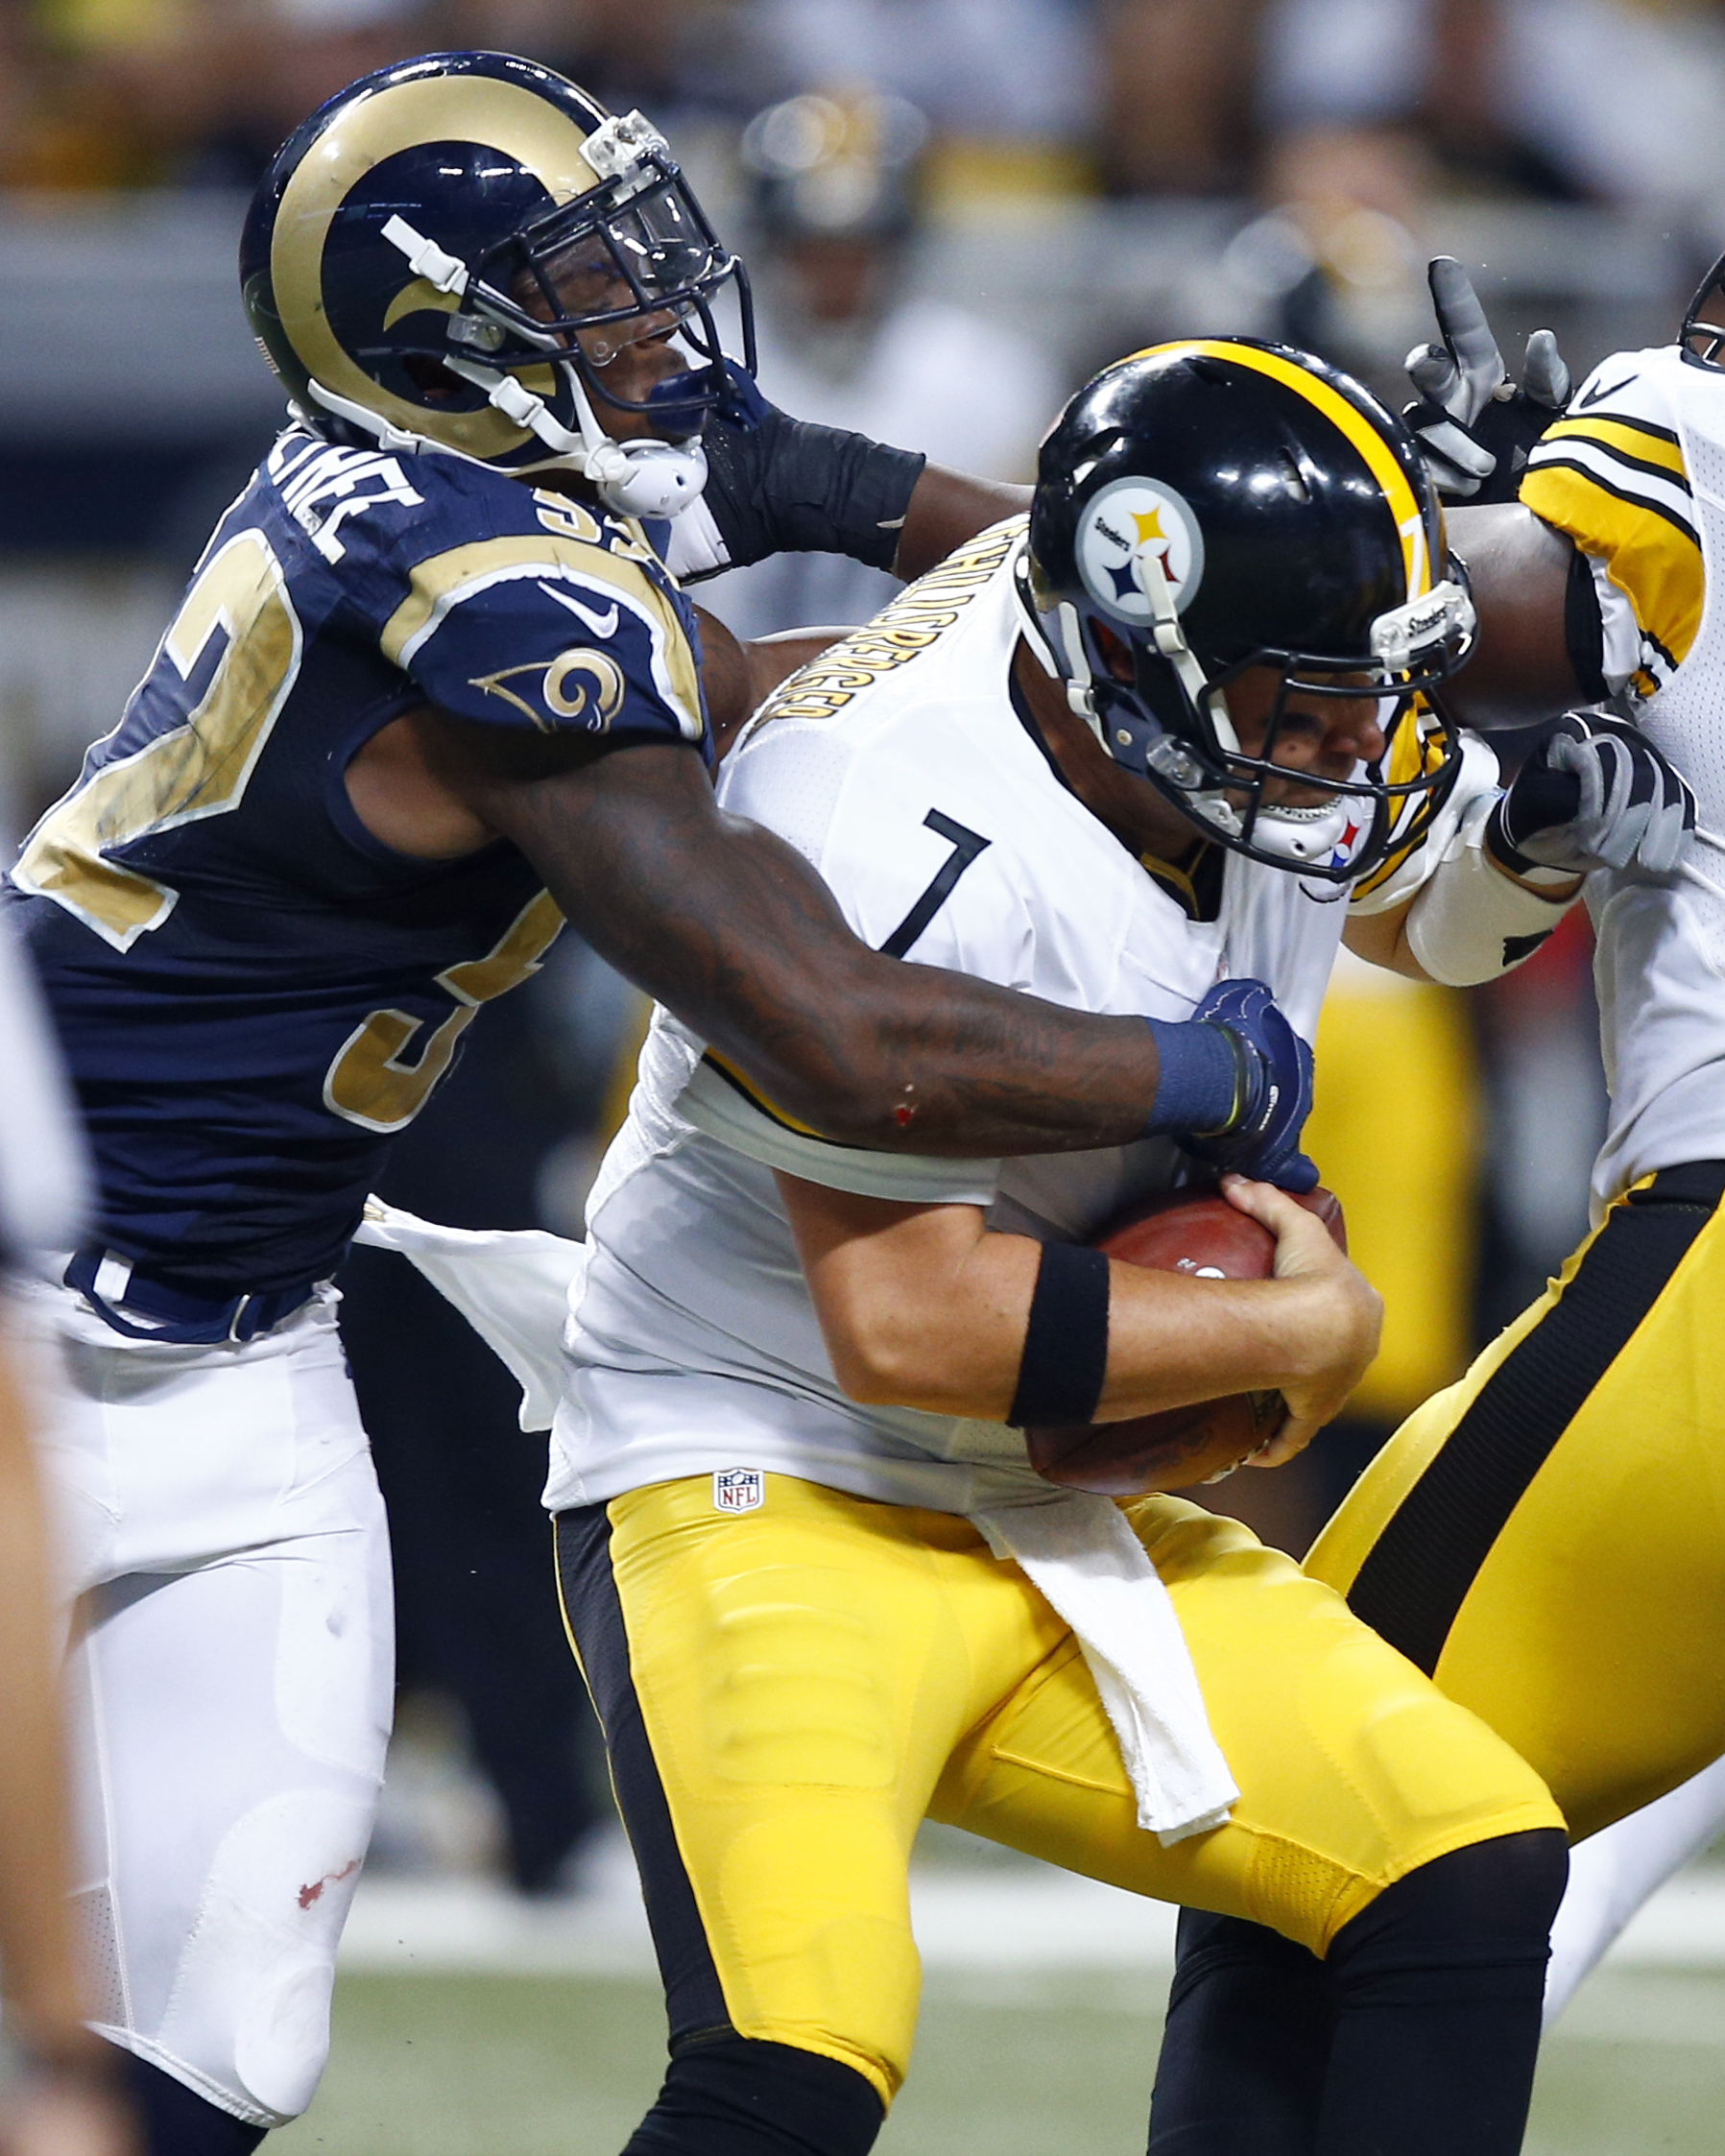 Pittsburgh Steelers quarterback Ben Roethlisberger, right, is sacked by St. Louis Rams linebacker Alec Ogletree during the second quarter of an NFL football game, Sunday, Sept. 27, 2015, in St. Louis. (AP Photo/Billy Hurst)